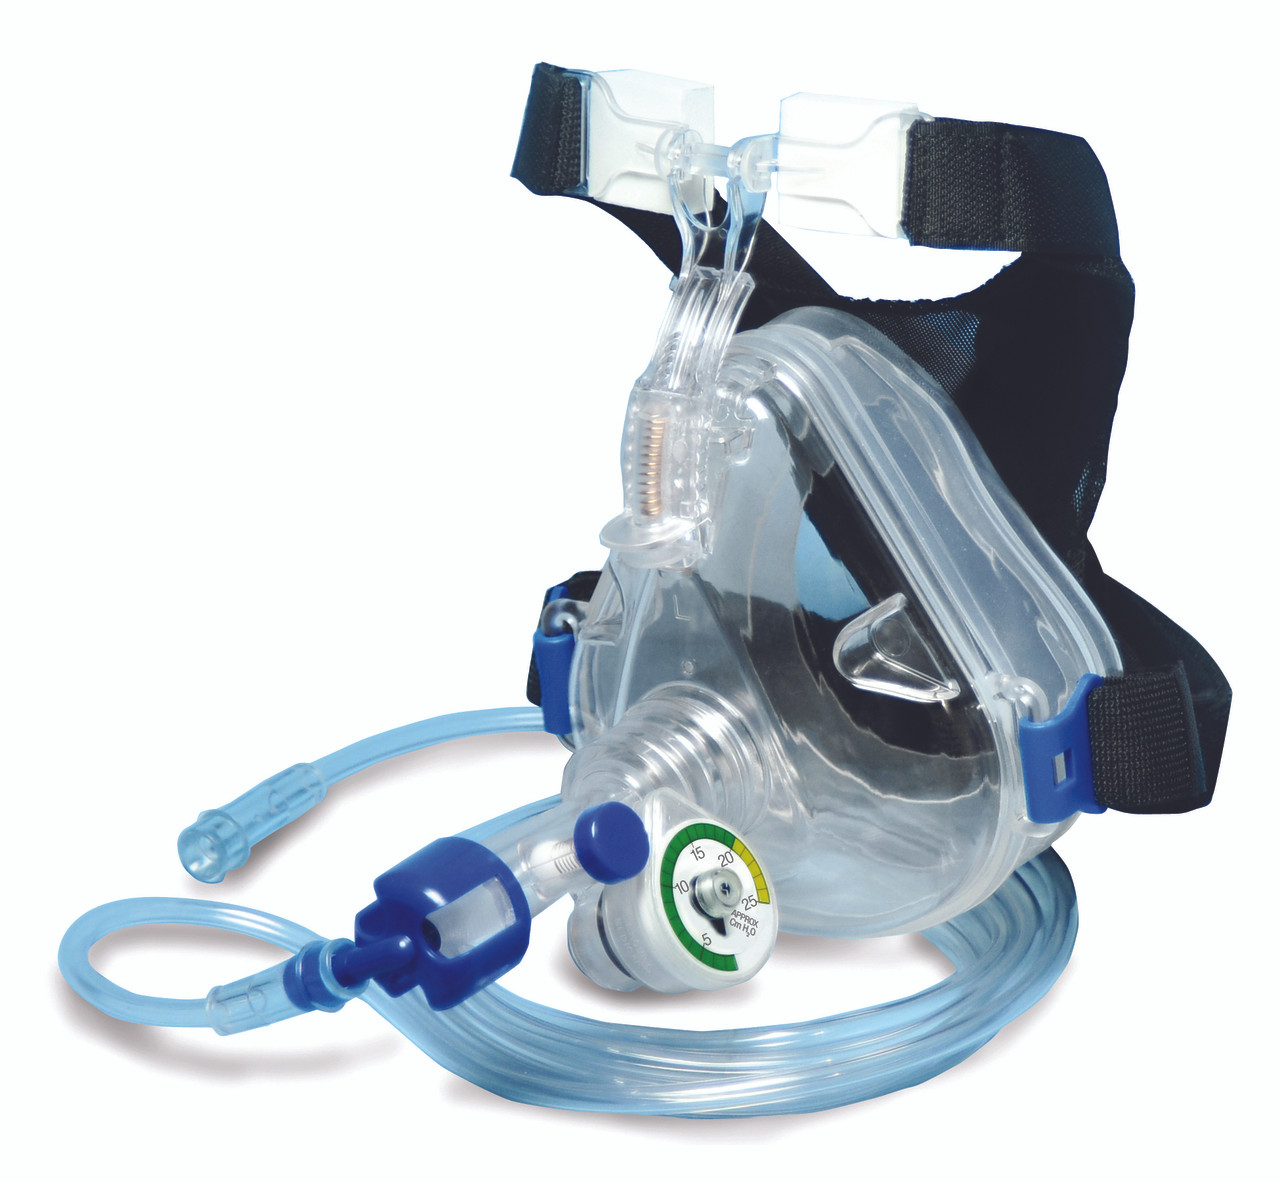 Flow-Safe2 Deluxe CPAP System with Manometer by Mercury Medical